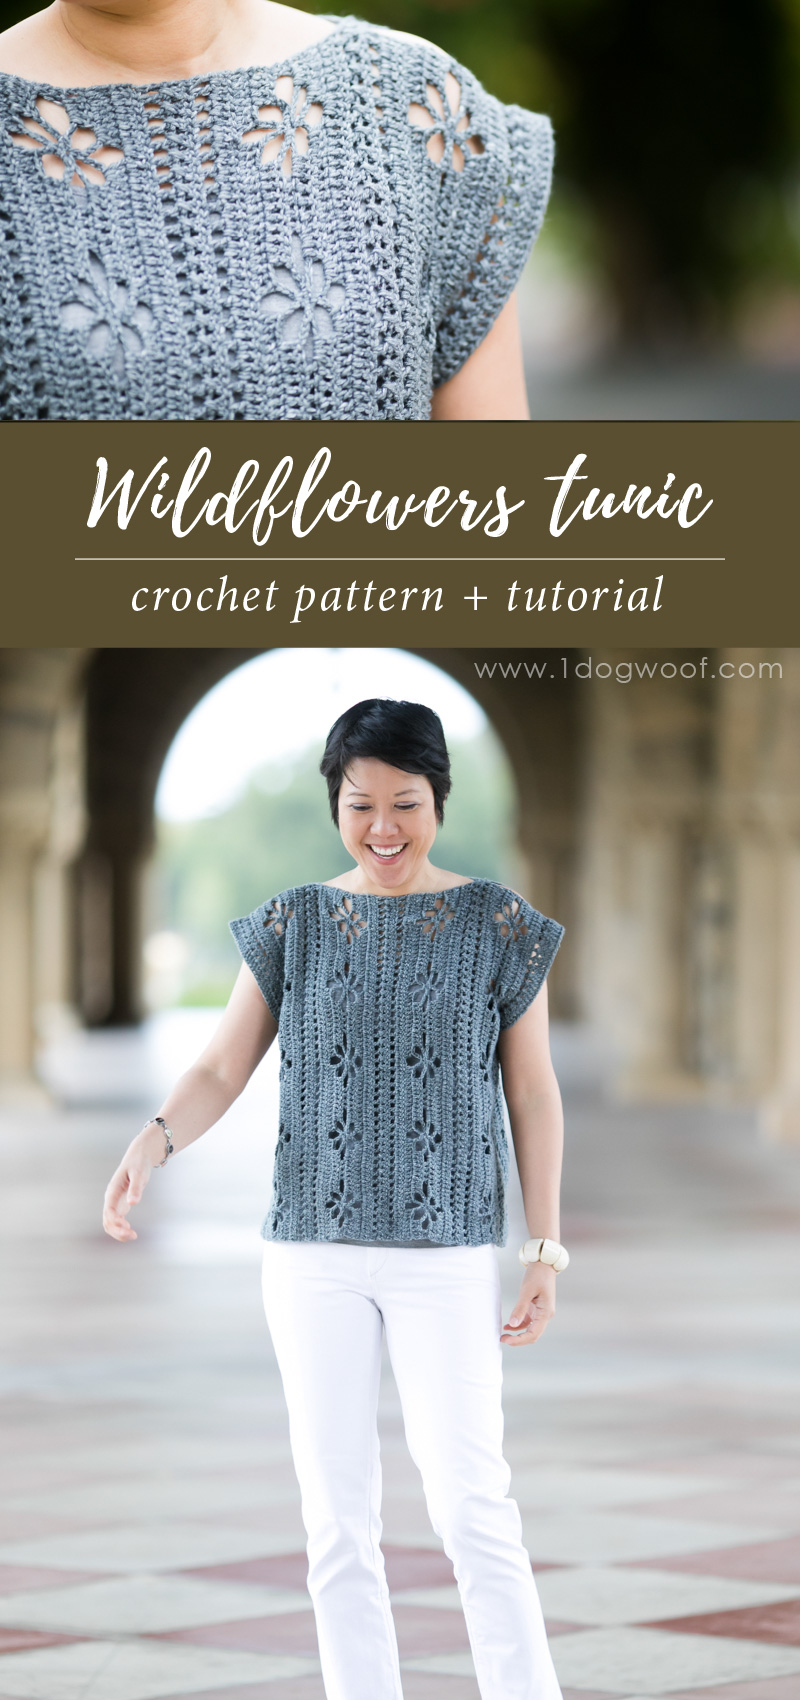 wildflowers tunic top pin image